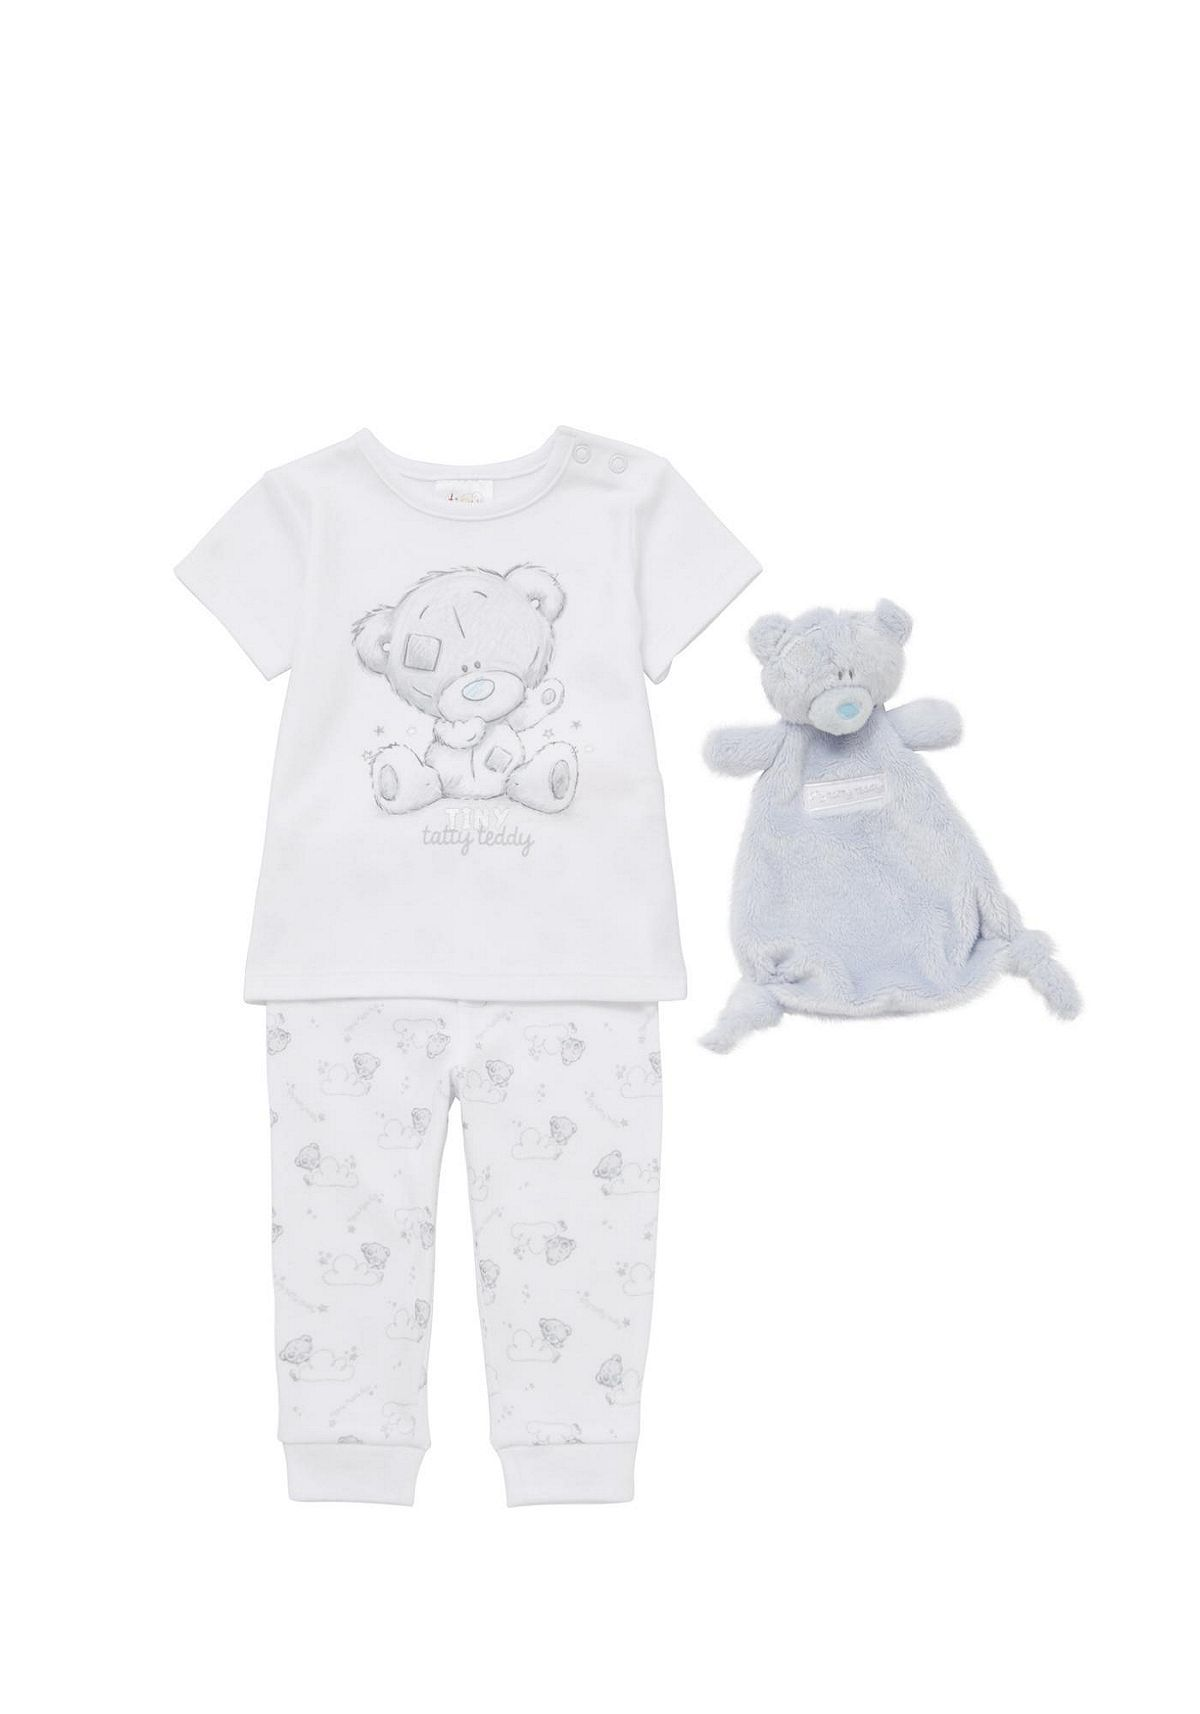 ffc5860a826fd8 Tesco direct: Me To You Tiny Tatty Teddy Pyjamas with Comforter ...